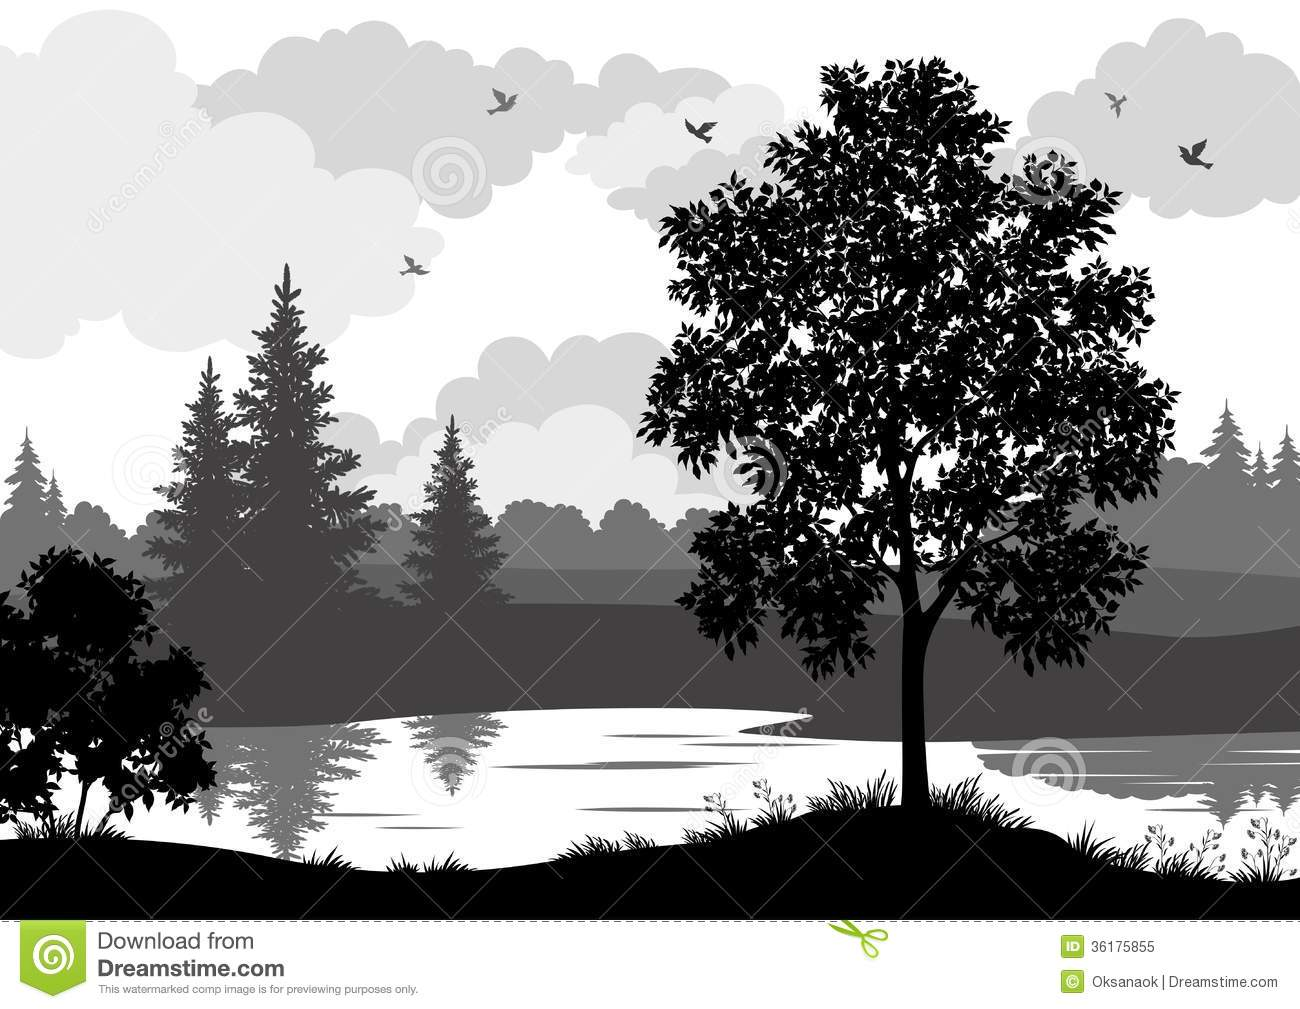 Tree silhouette with river clipart.